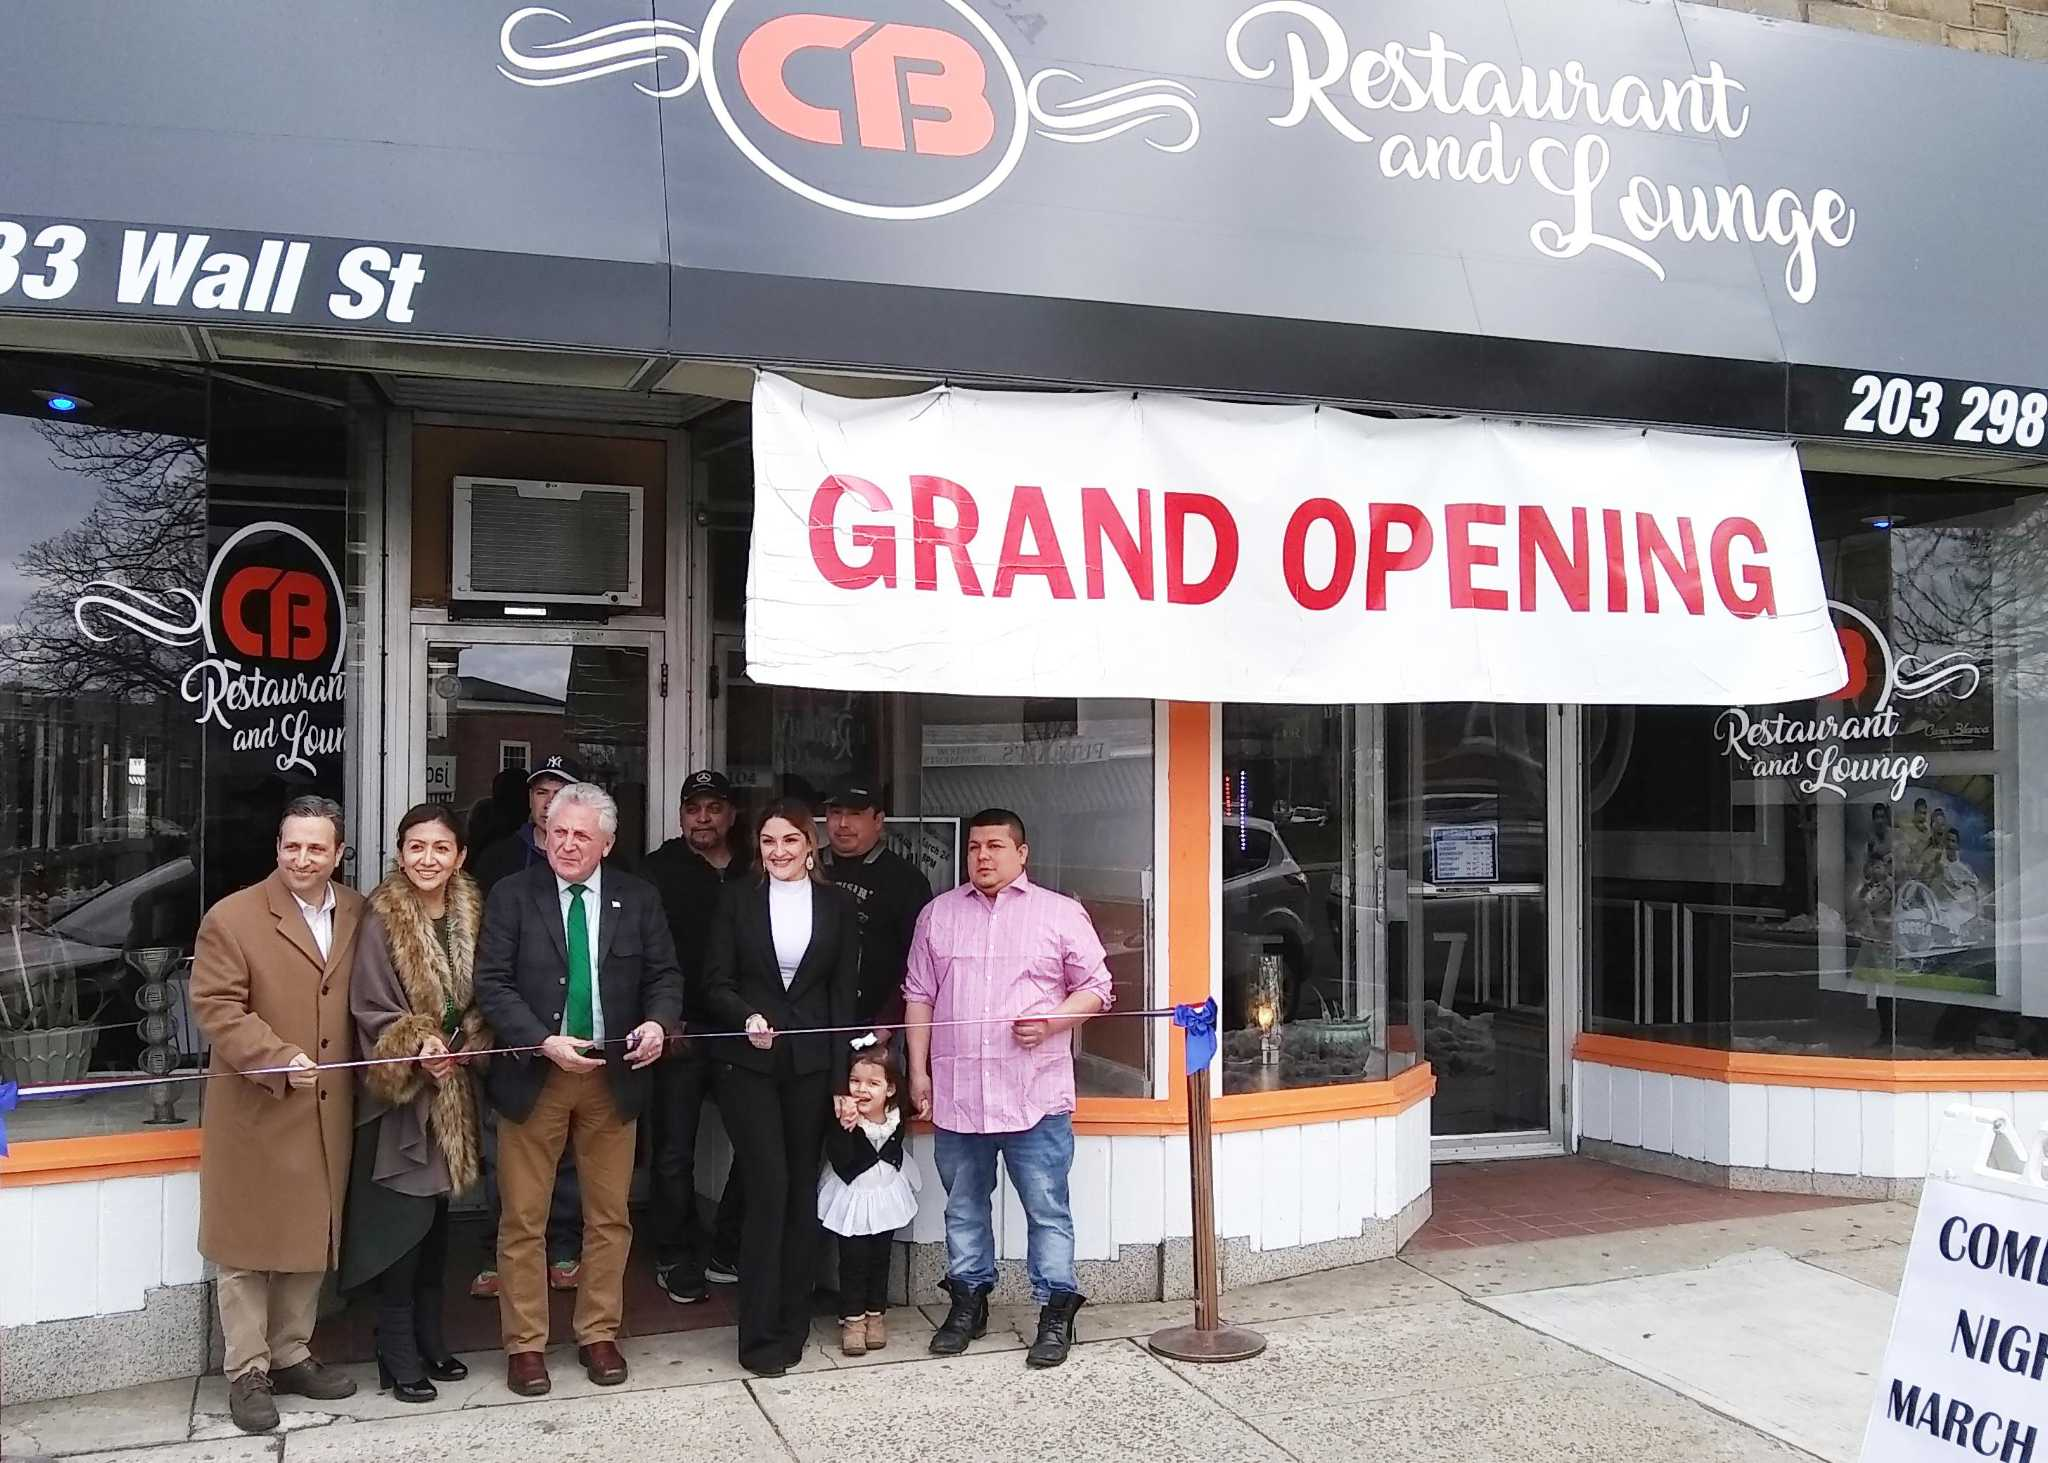 norwalk restaurant holds grand opening on wall street